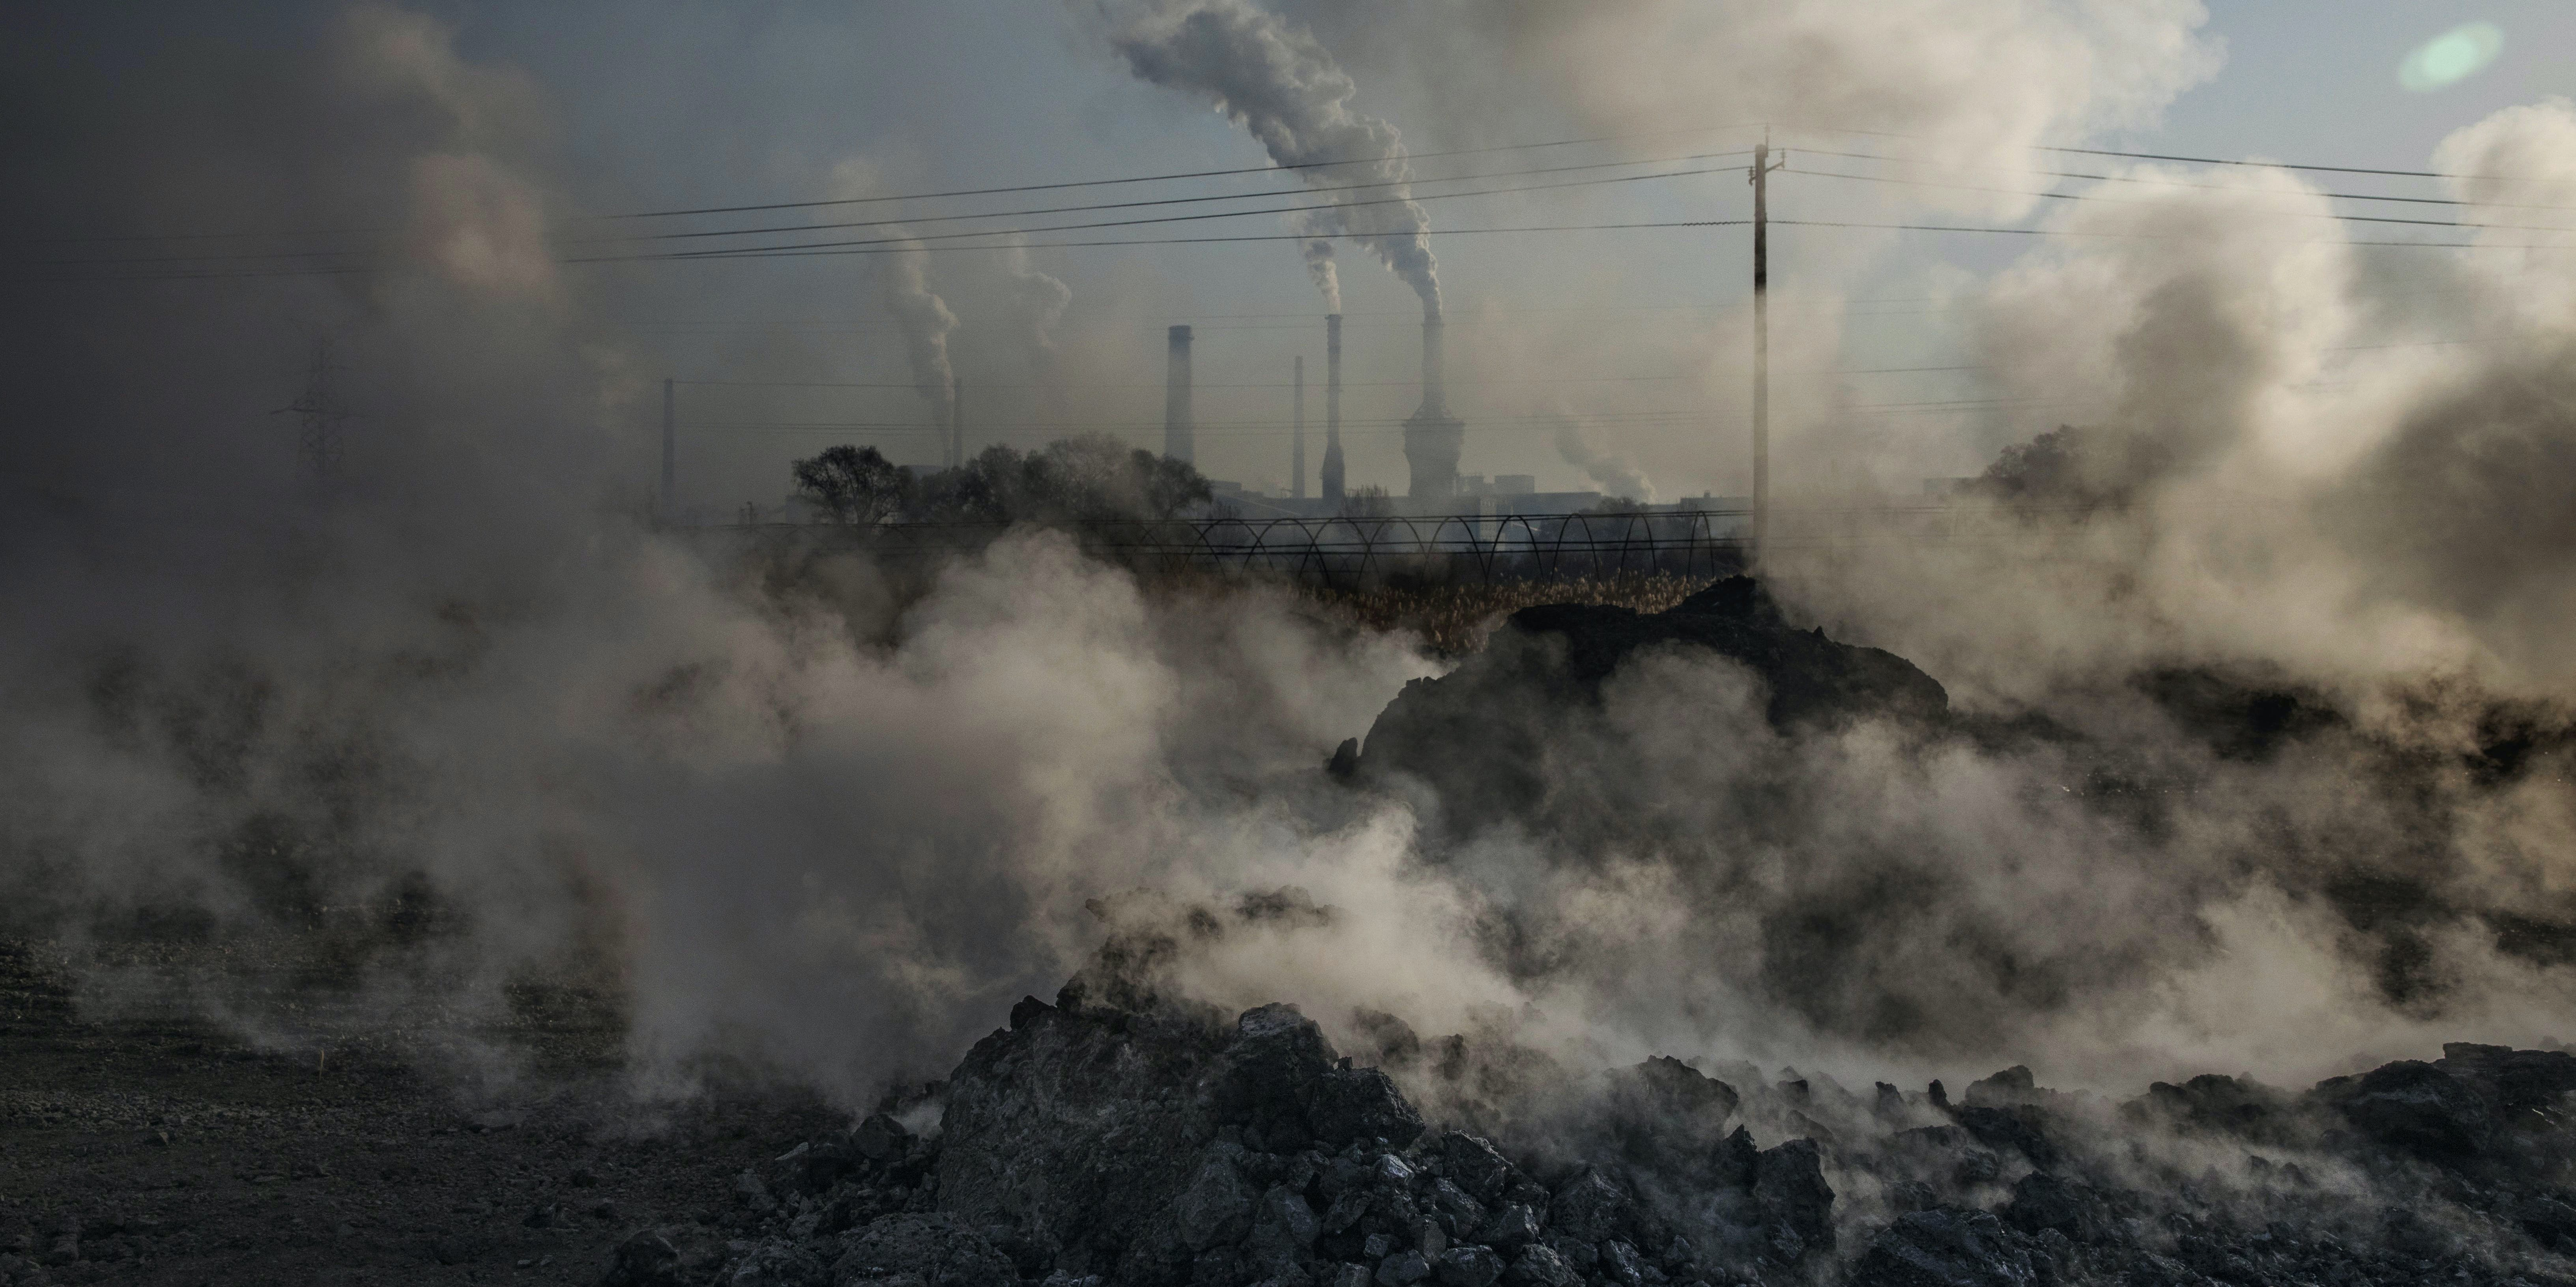 Steam and smoke from waste coal and stone rises after being dumped next to an unauthorized steel factory on November 3, 2016 in Inner Mongolia, China. To meet China's targets to slash emissions of carbon dioxide, authorities are pushing to shut down privately owned steel, coal, and other high-polluting factories scattered across rural areas. In many cases, factory owners say they pay informal 'fines' to local inspectors and then re-open. The enforcement comes as the future of U.S. support for the 2015 Paris Agreement is in question, leaving China poised as an unlikely leader in the international effort against climate change. U.S. president-elect Donald Trump has sent mixed signals about whether he will withdraw the U.S. from commitments to curb greenhouse gases that, according to scientists, are causing the earth's temperature to rise. Trump once declared that the concept of global warming was 'created' by China in order to hurt U.S. manufacturing. China's leadership has stated that any change in U.S. climate policy will not affect its commitment to implement the climate action plan. While the world's biggest polluter, China is also a global leader in establishing renewable energy sources such as wind and solar power.